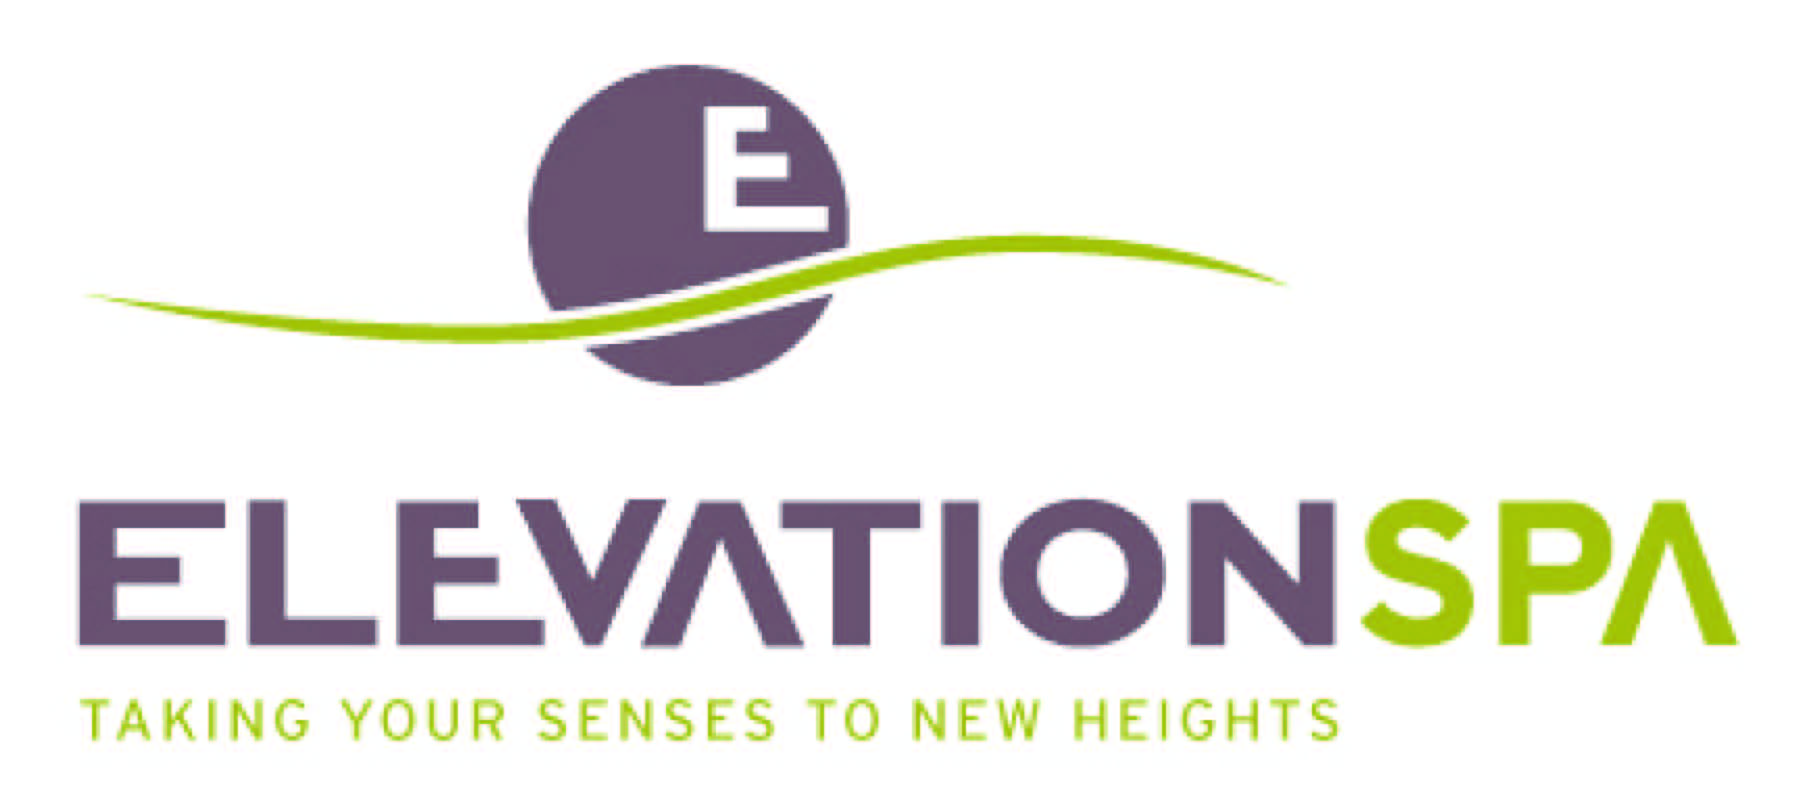 Elevation Spa & Fitness Center